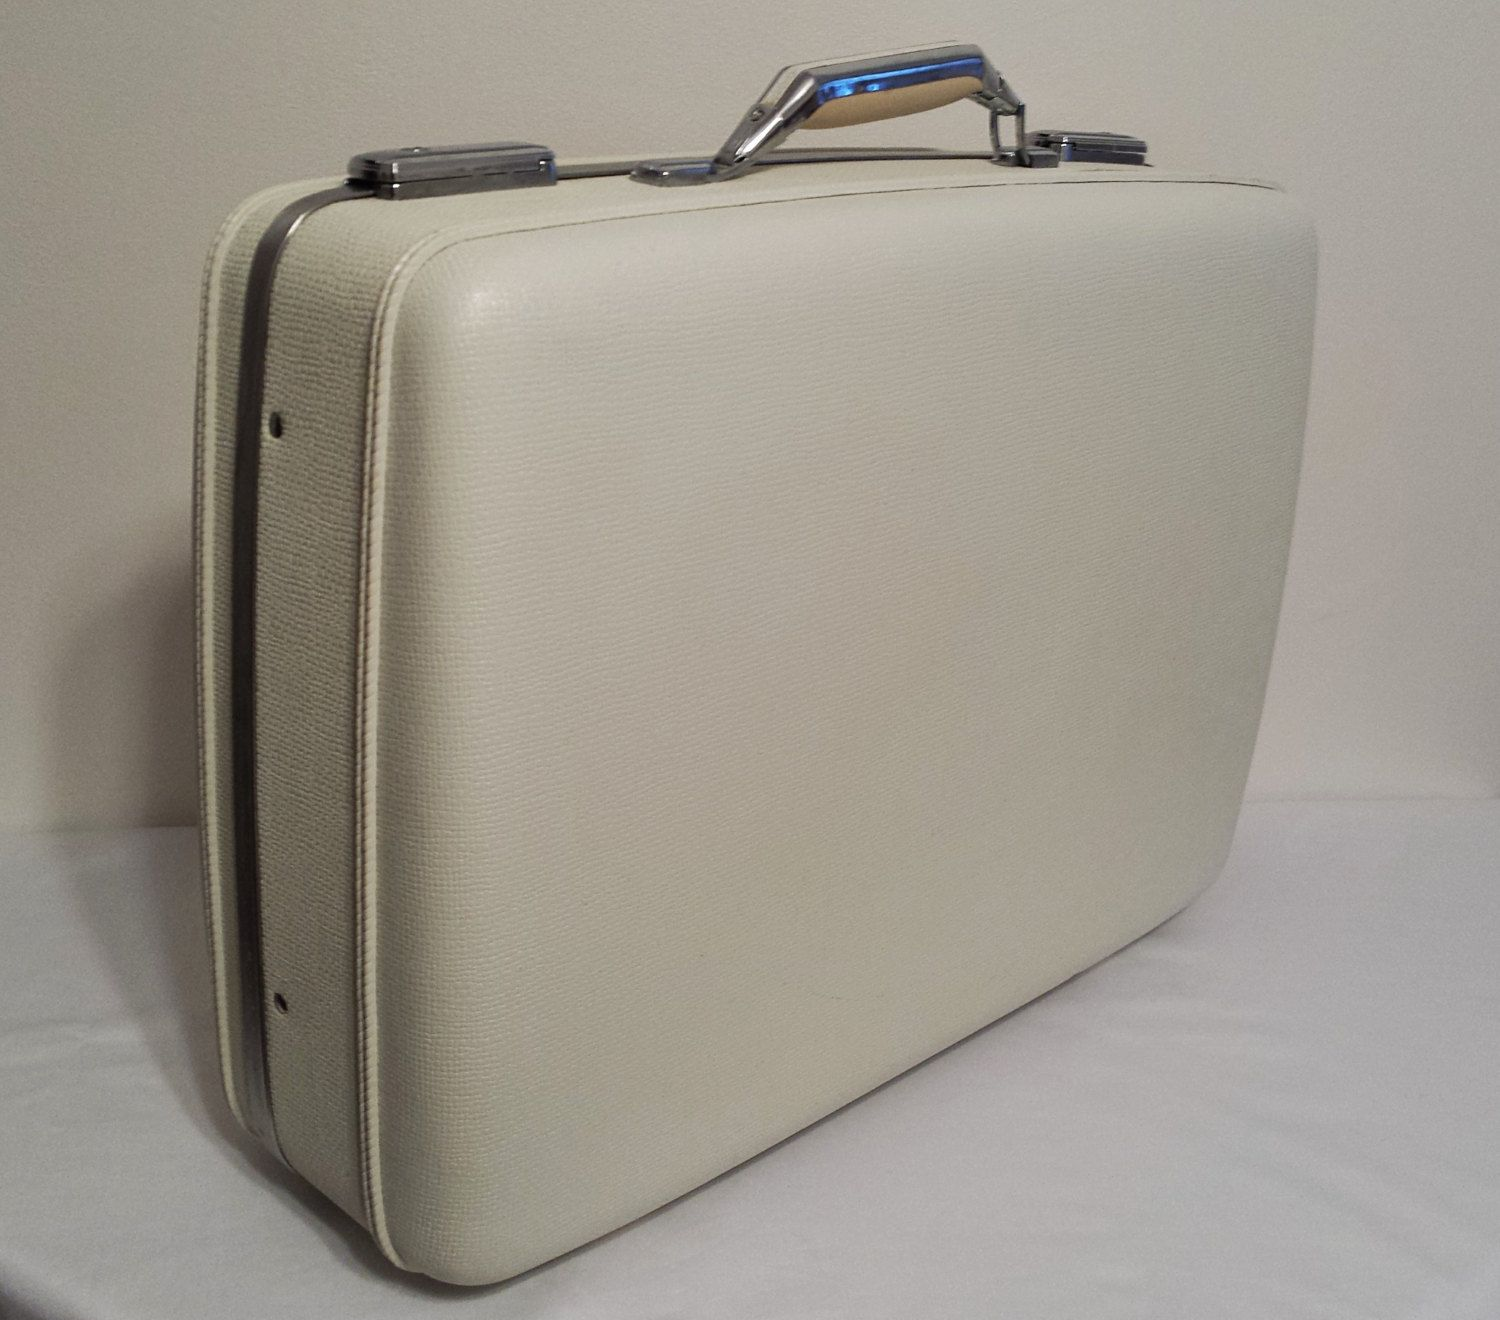 American Tourister Tiara White Suitcase Blue Interior ~ PPT - pinned by pin4etsy.com